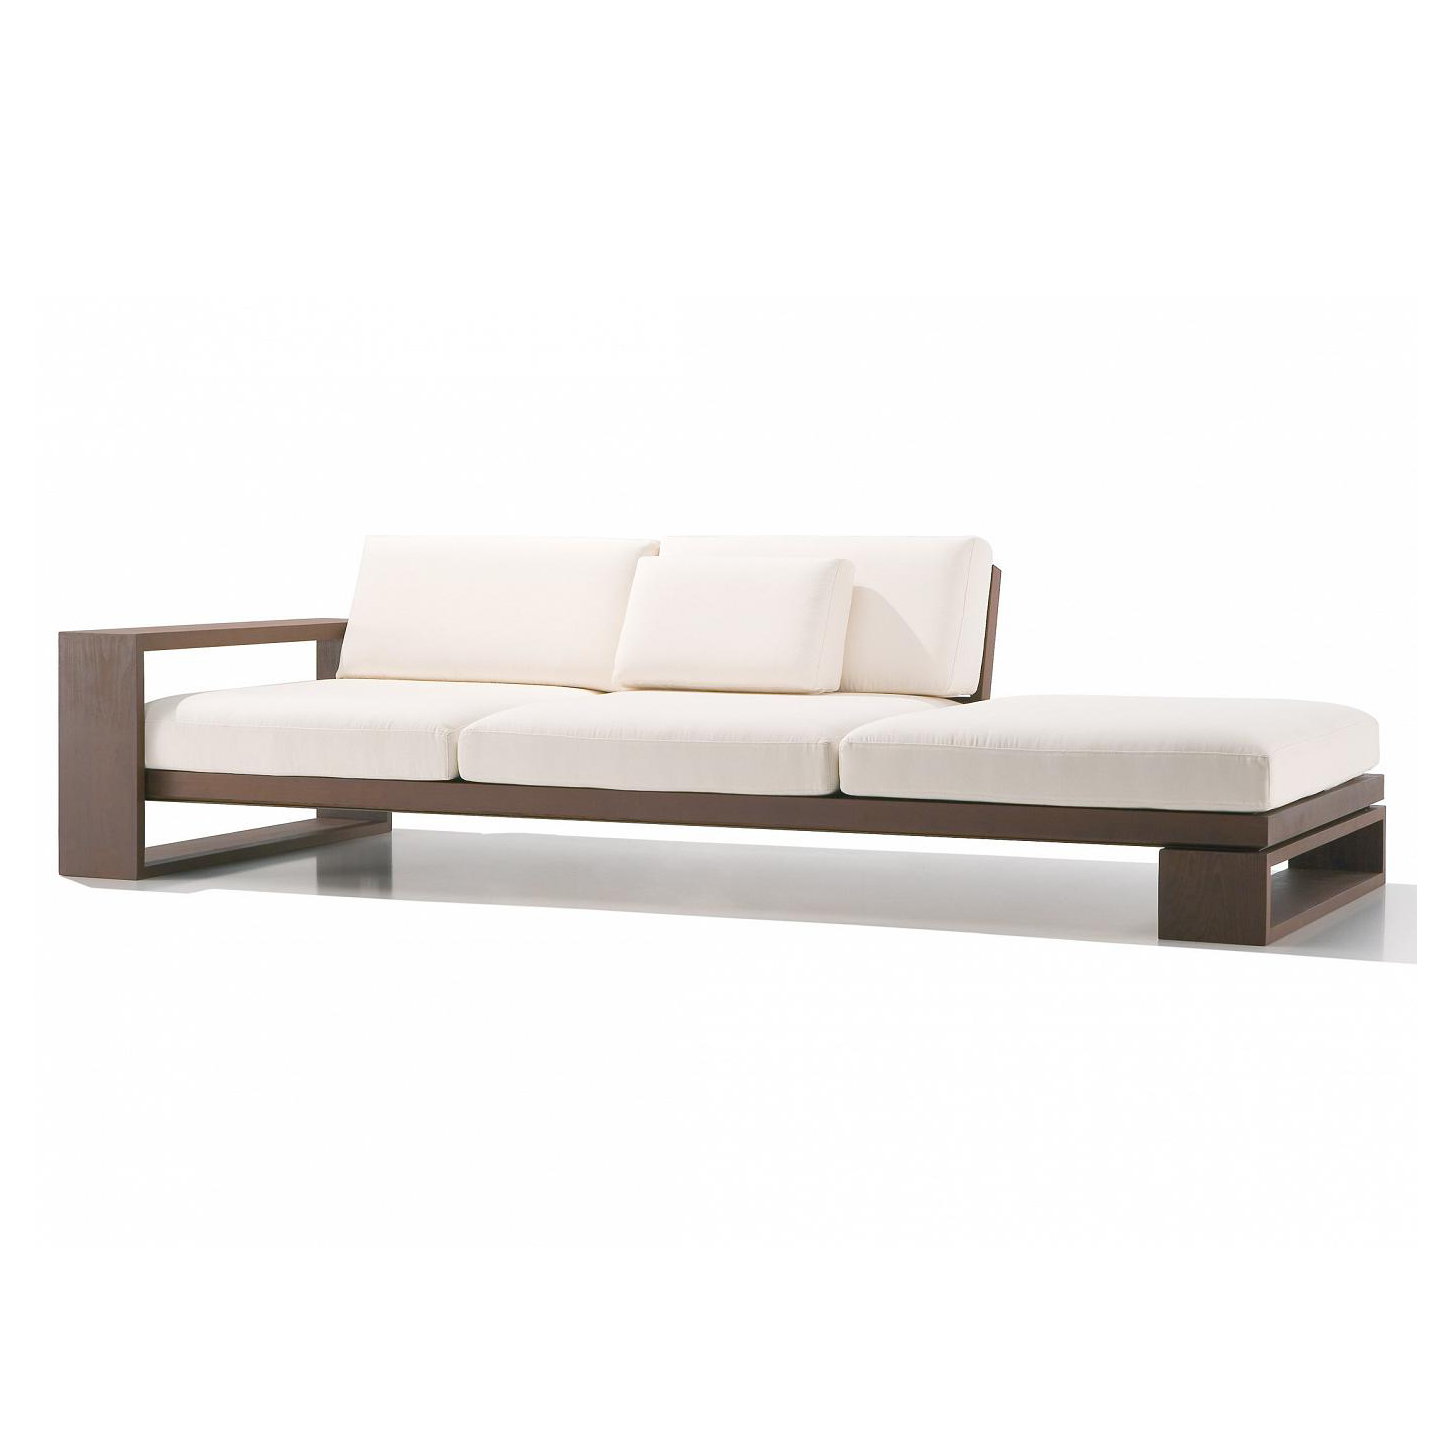 Modern white sofa design (WS 39) Details | BIC Furniture India